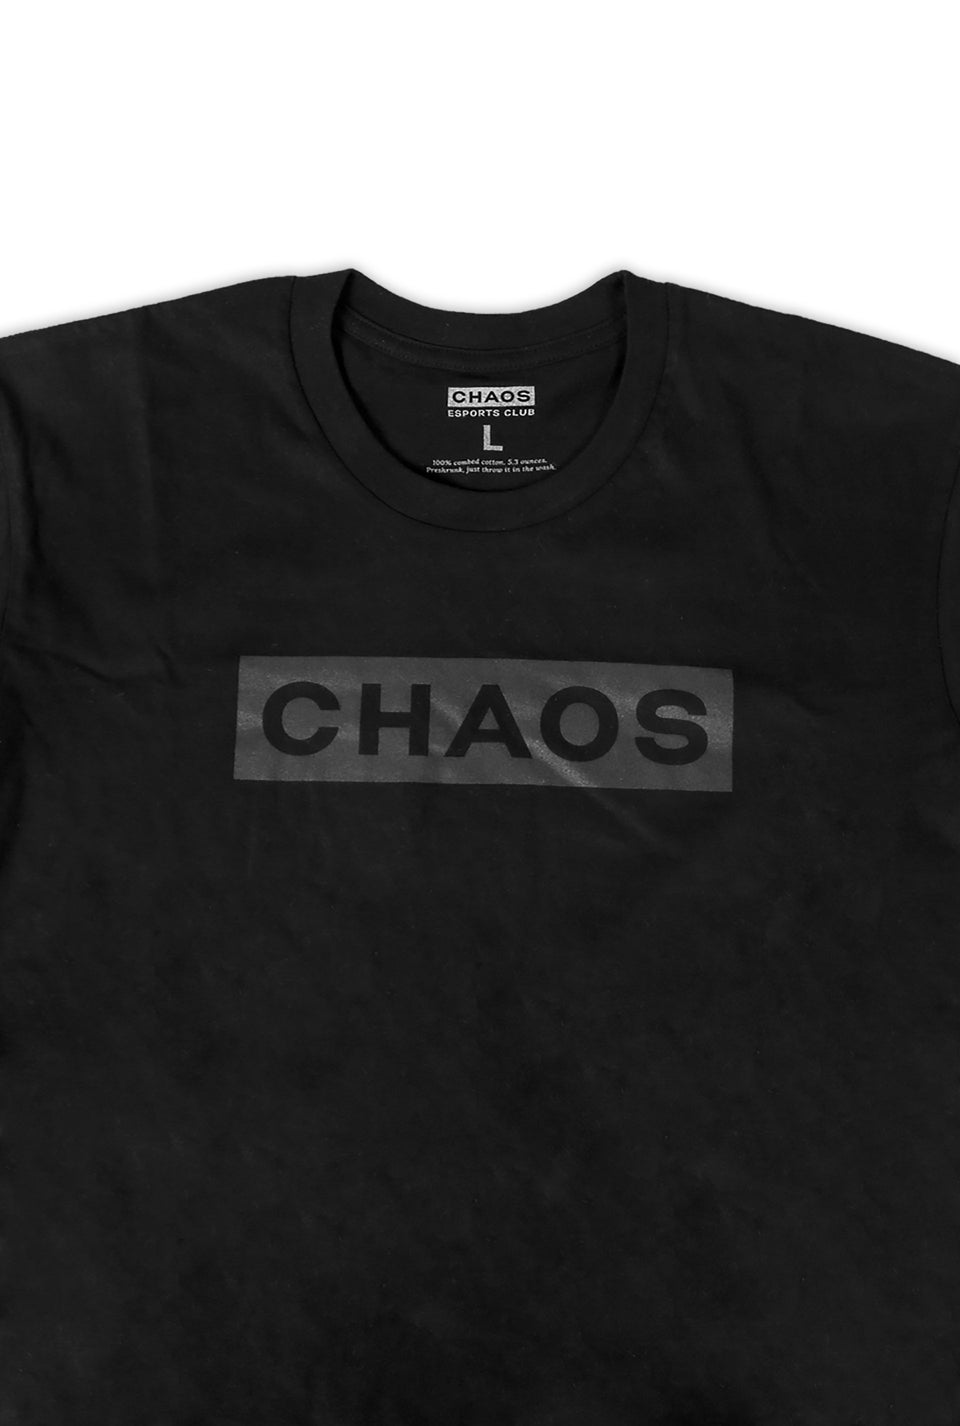 Chaos Stealth Stamp Tee